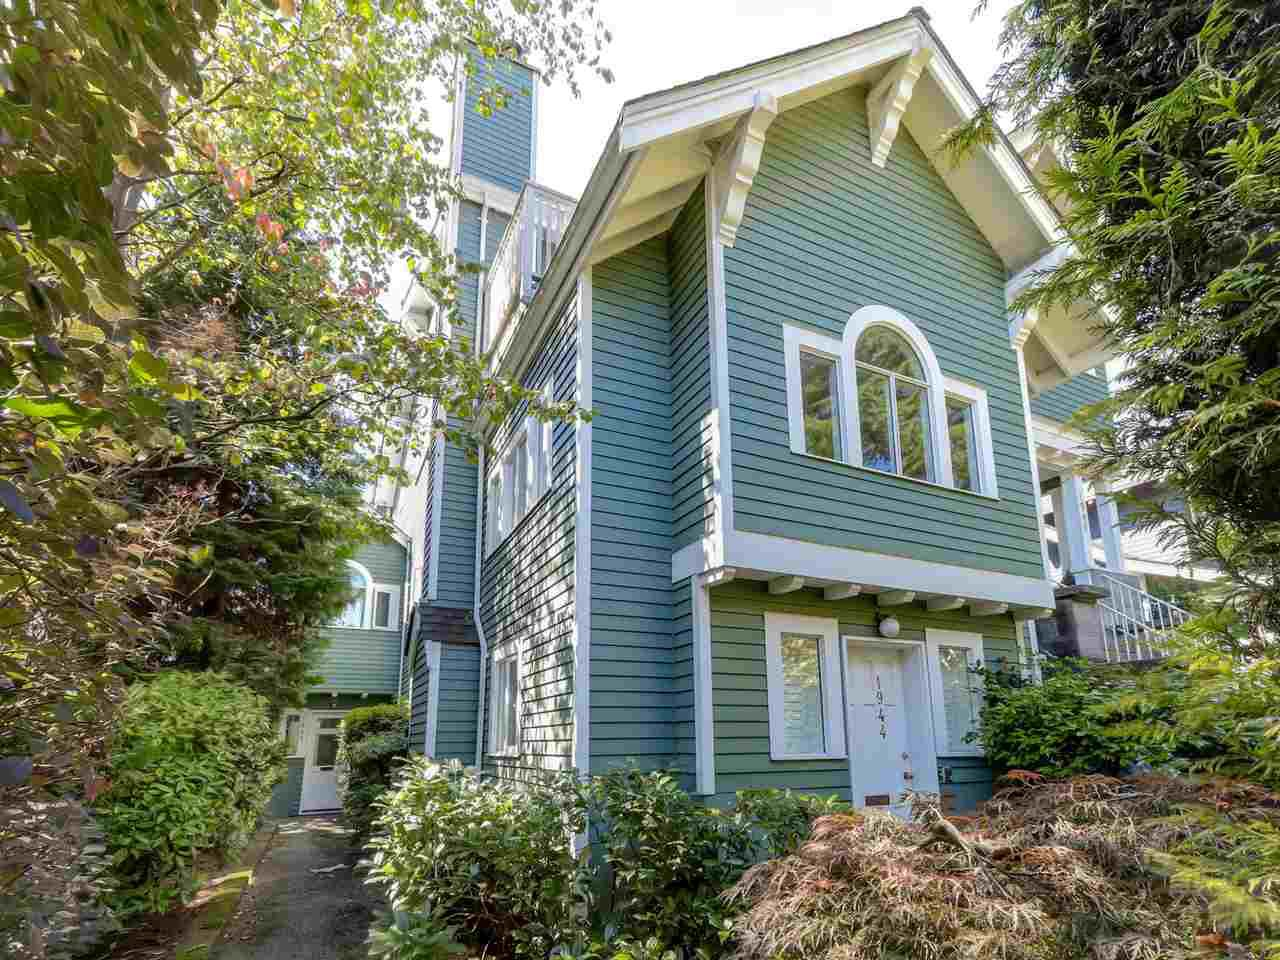 Main Photo: 1942 W 15TH Avenue in Vancouver: Kitsilano Townhouse for sale (Vancouver West)  : MLS®# R2088741